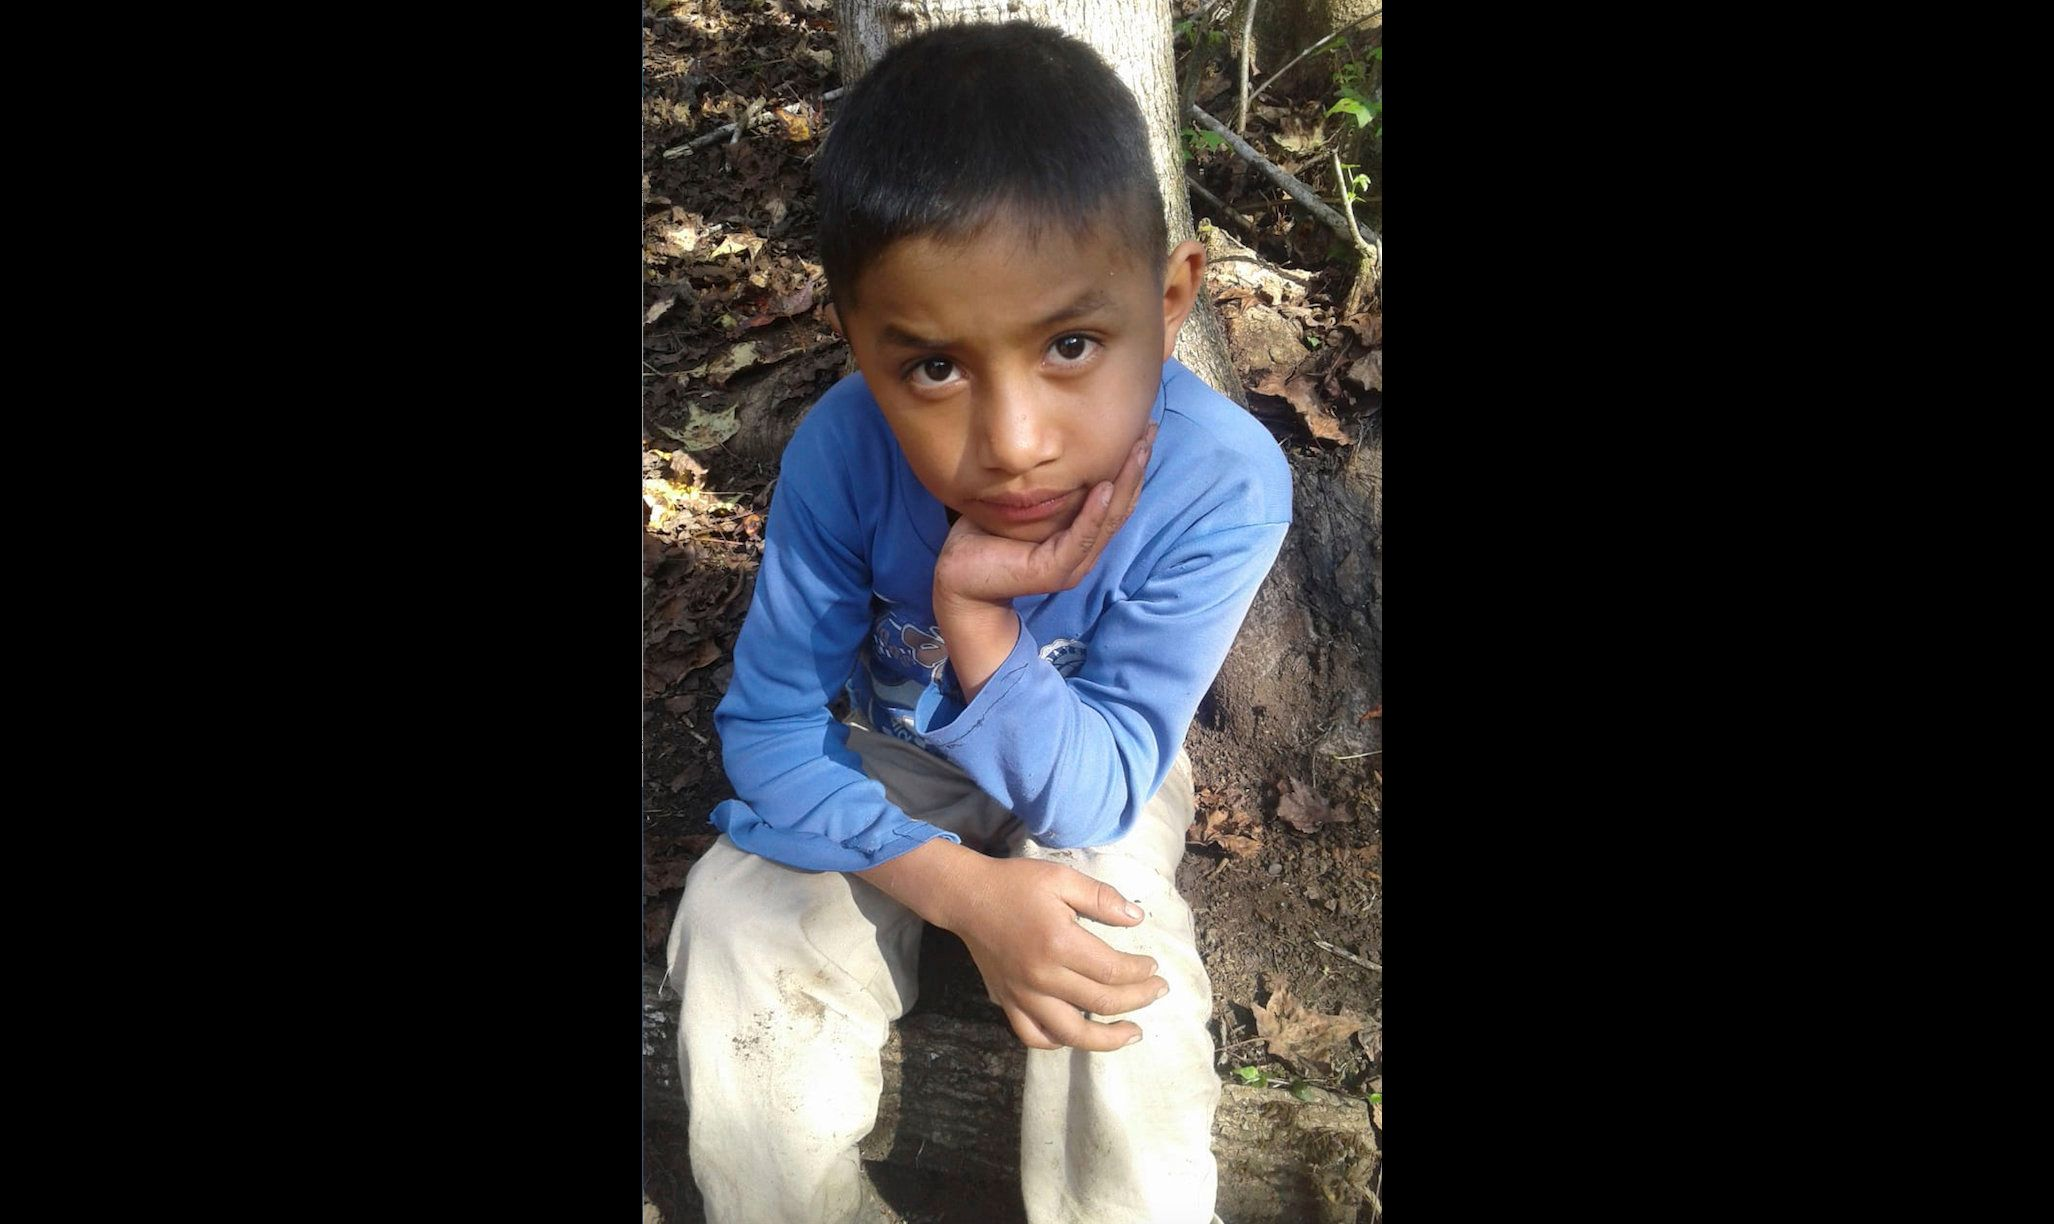 Father Of Boy Who Died In U.S. Custody Heard Rumors They Could Cross Border